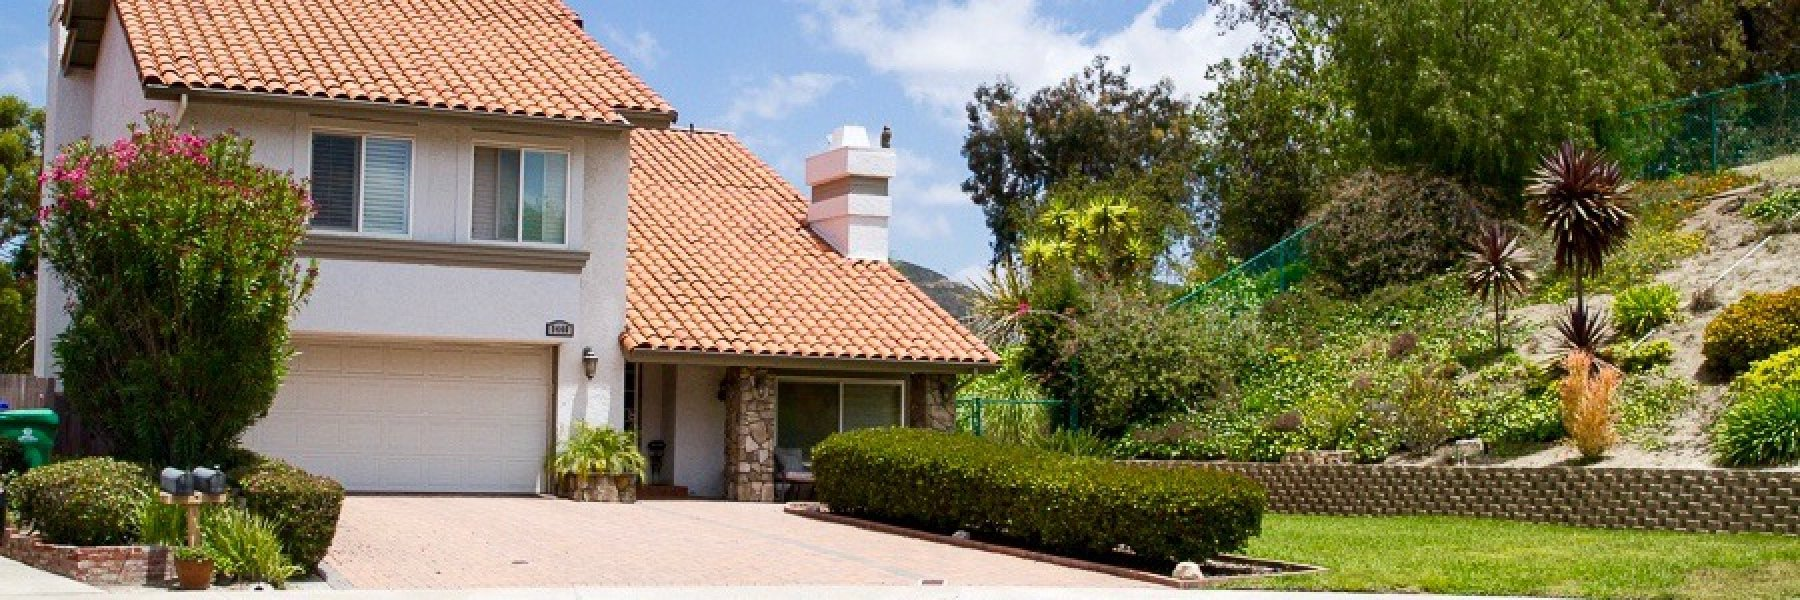 Penasquitos Estates is a community of homes in San Diego California